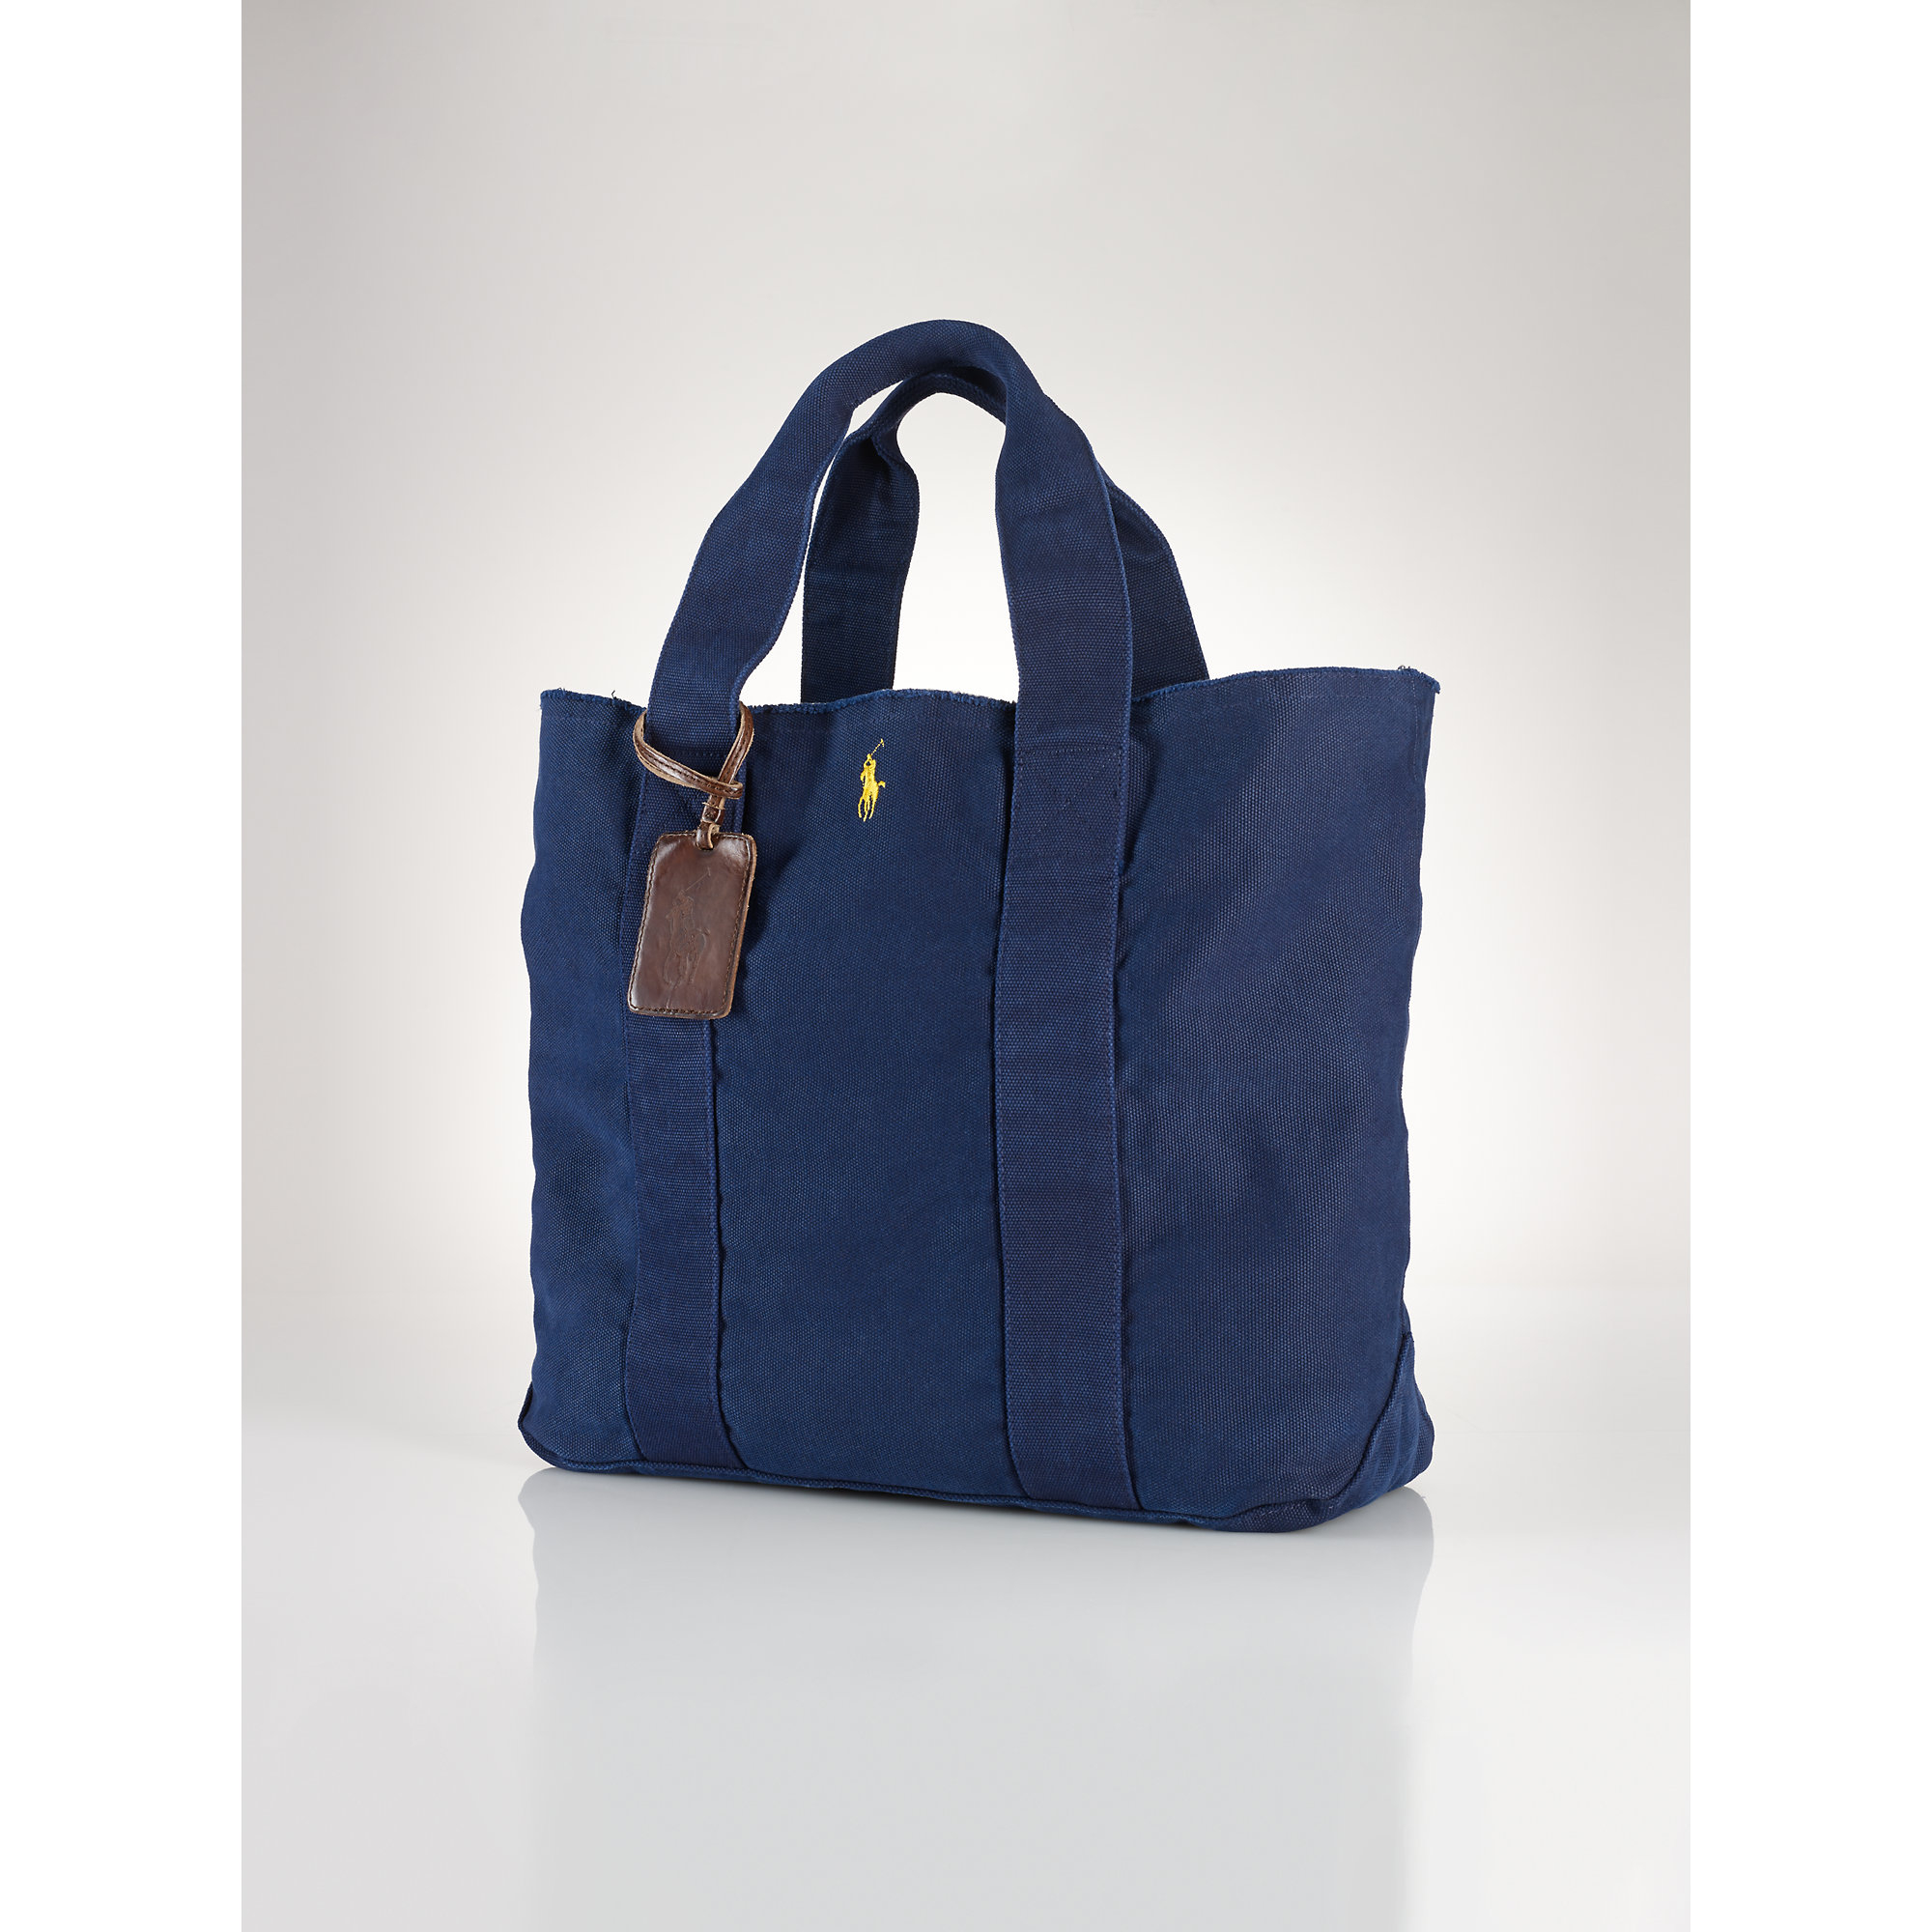 Polo ralph lauren Pony Canvas Tote in Blue | Lyst